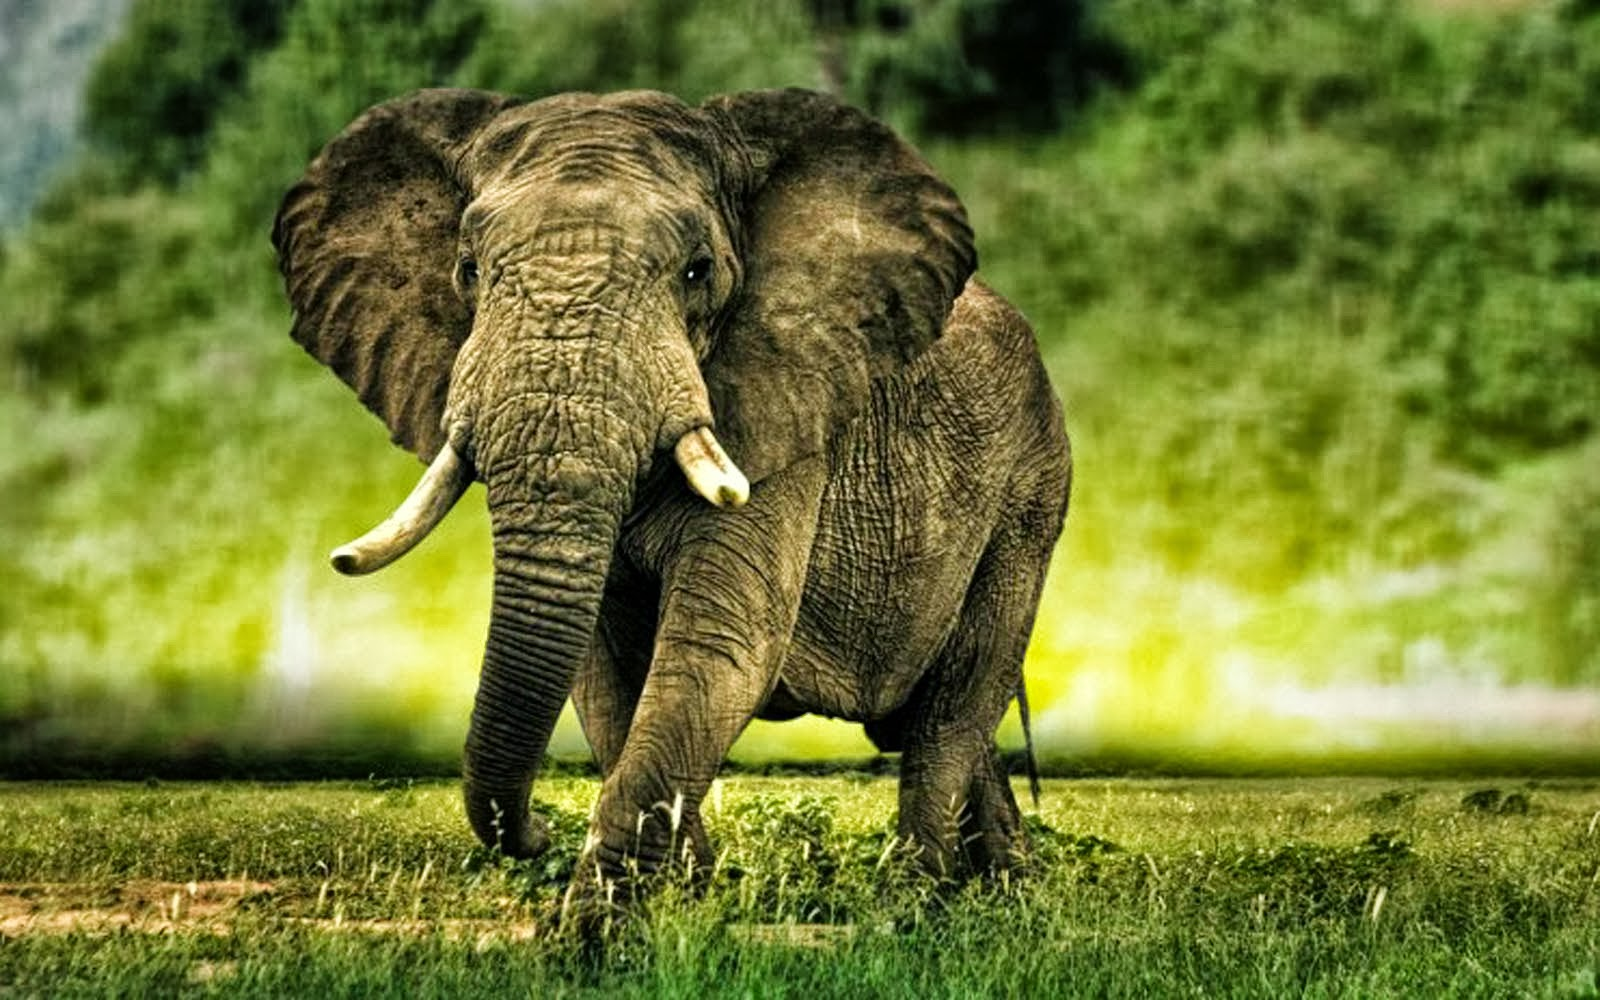 Beautiful Pictures Of Elephant In Hd: HD Elephant Wallpaper